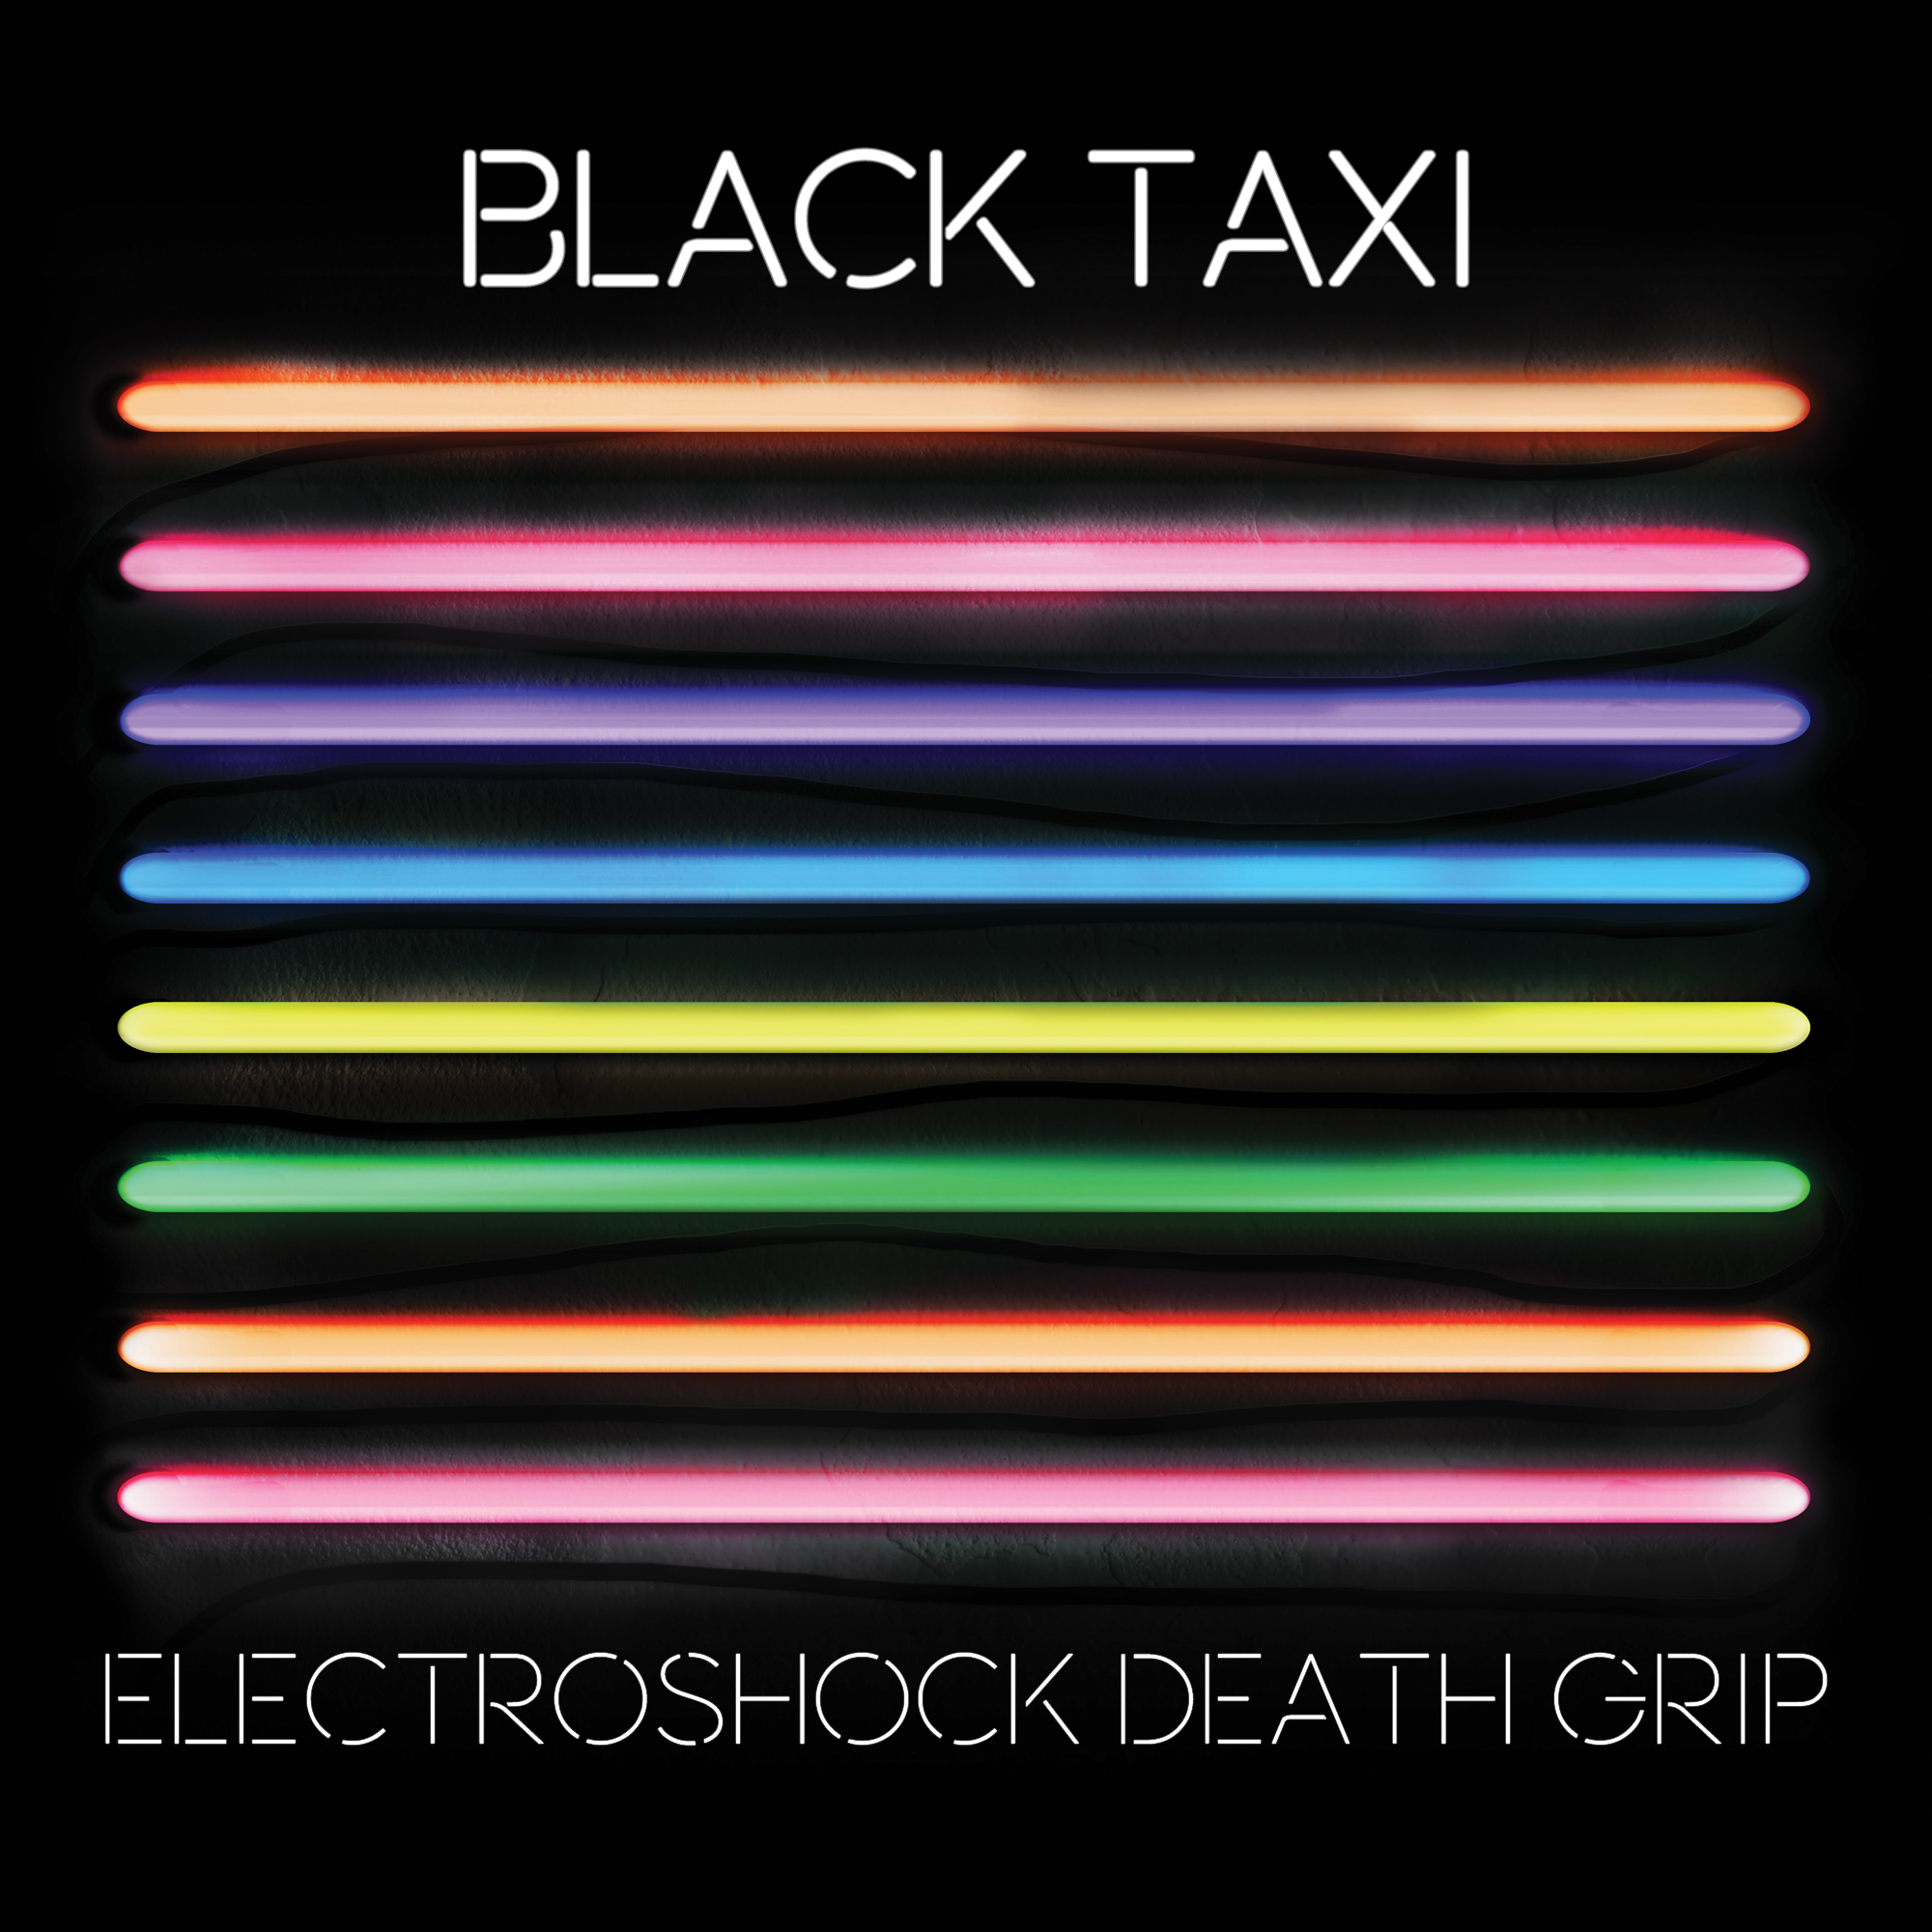 Black Taxi Electroshock Death Grip